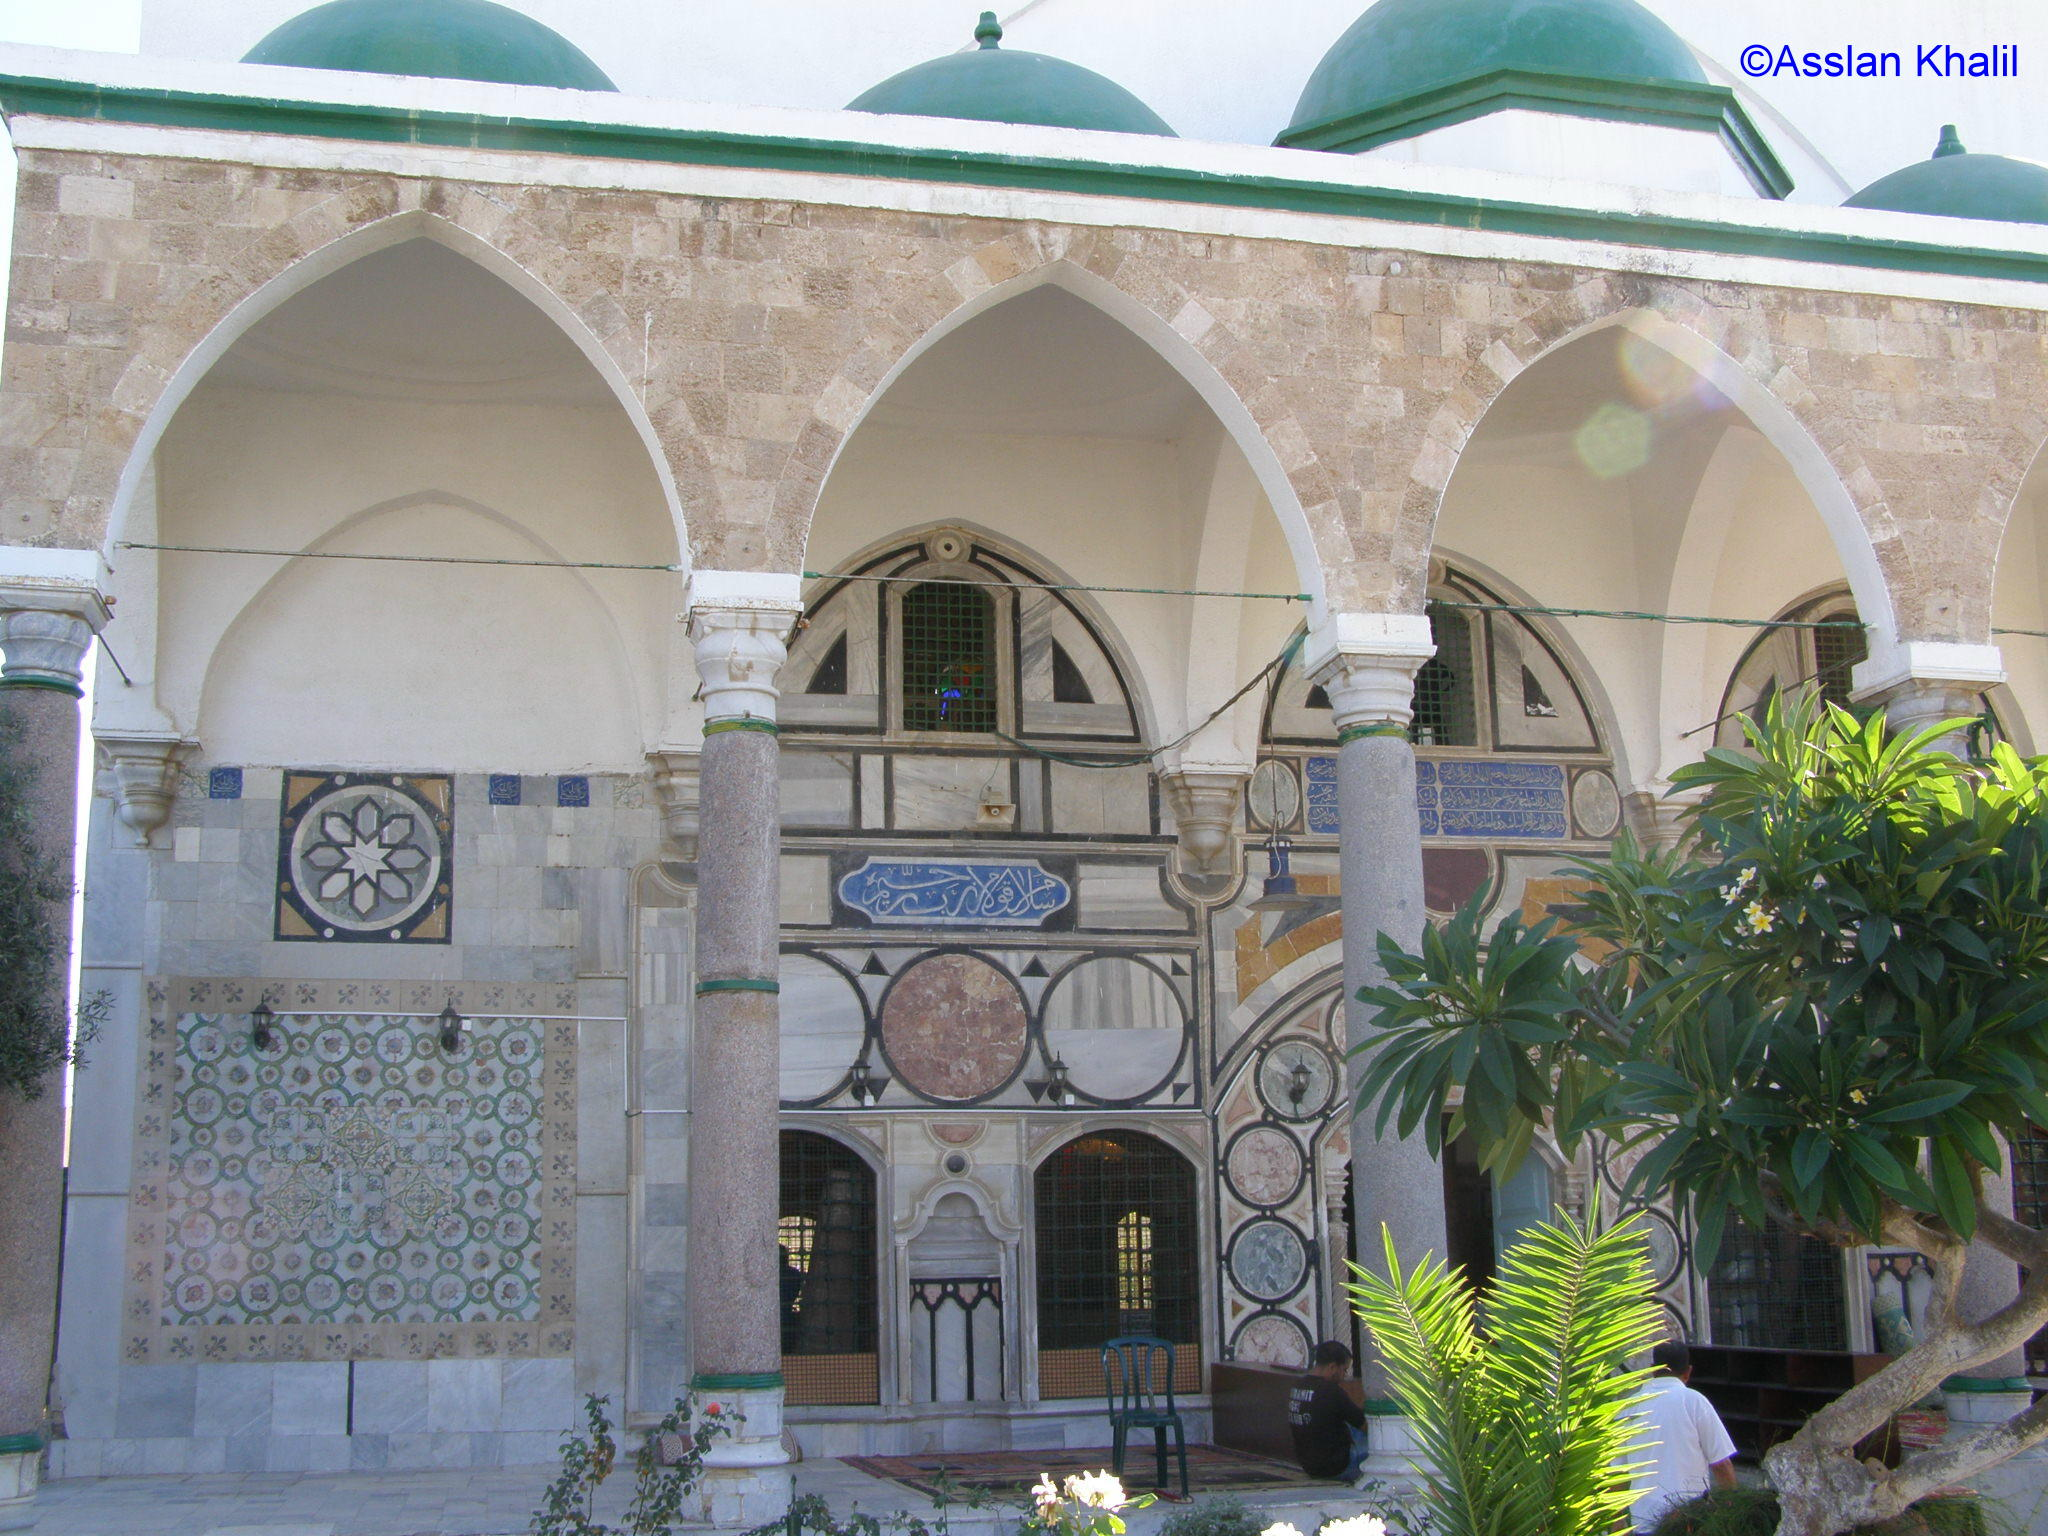 Acre - عكا : Al-Jazzar Mosque Entrance - Akka